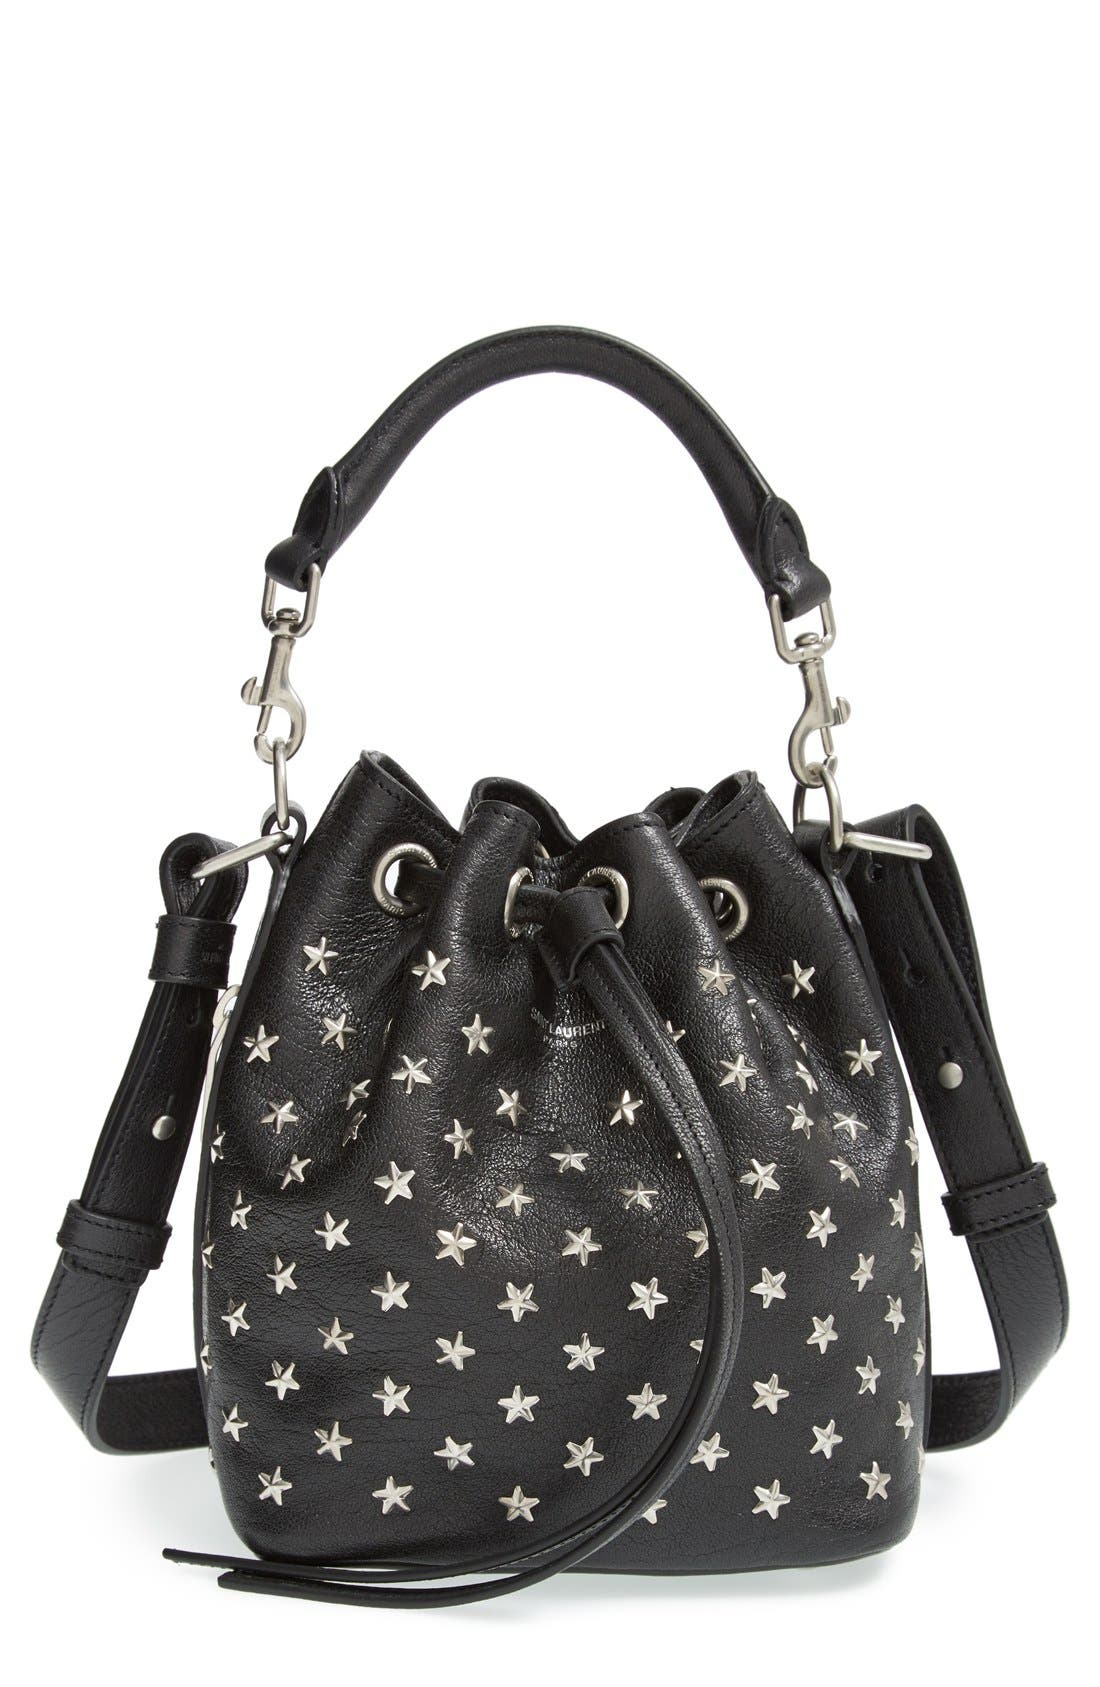 Main Image - Saint Laurent Studded Small Leather Bucket Bag